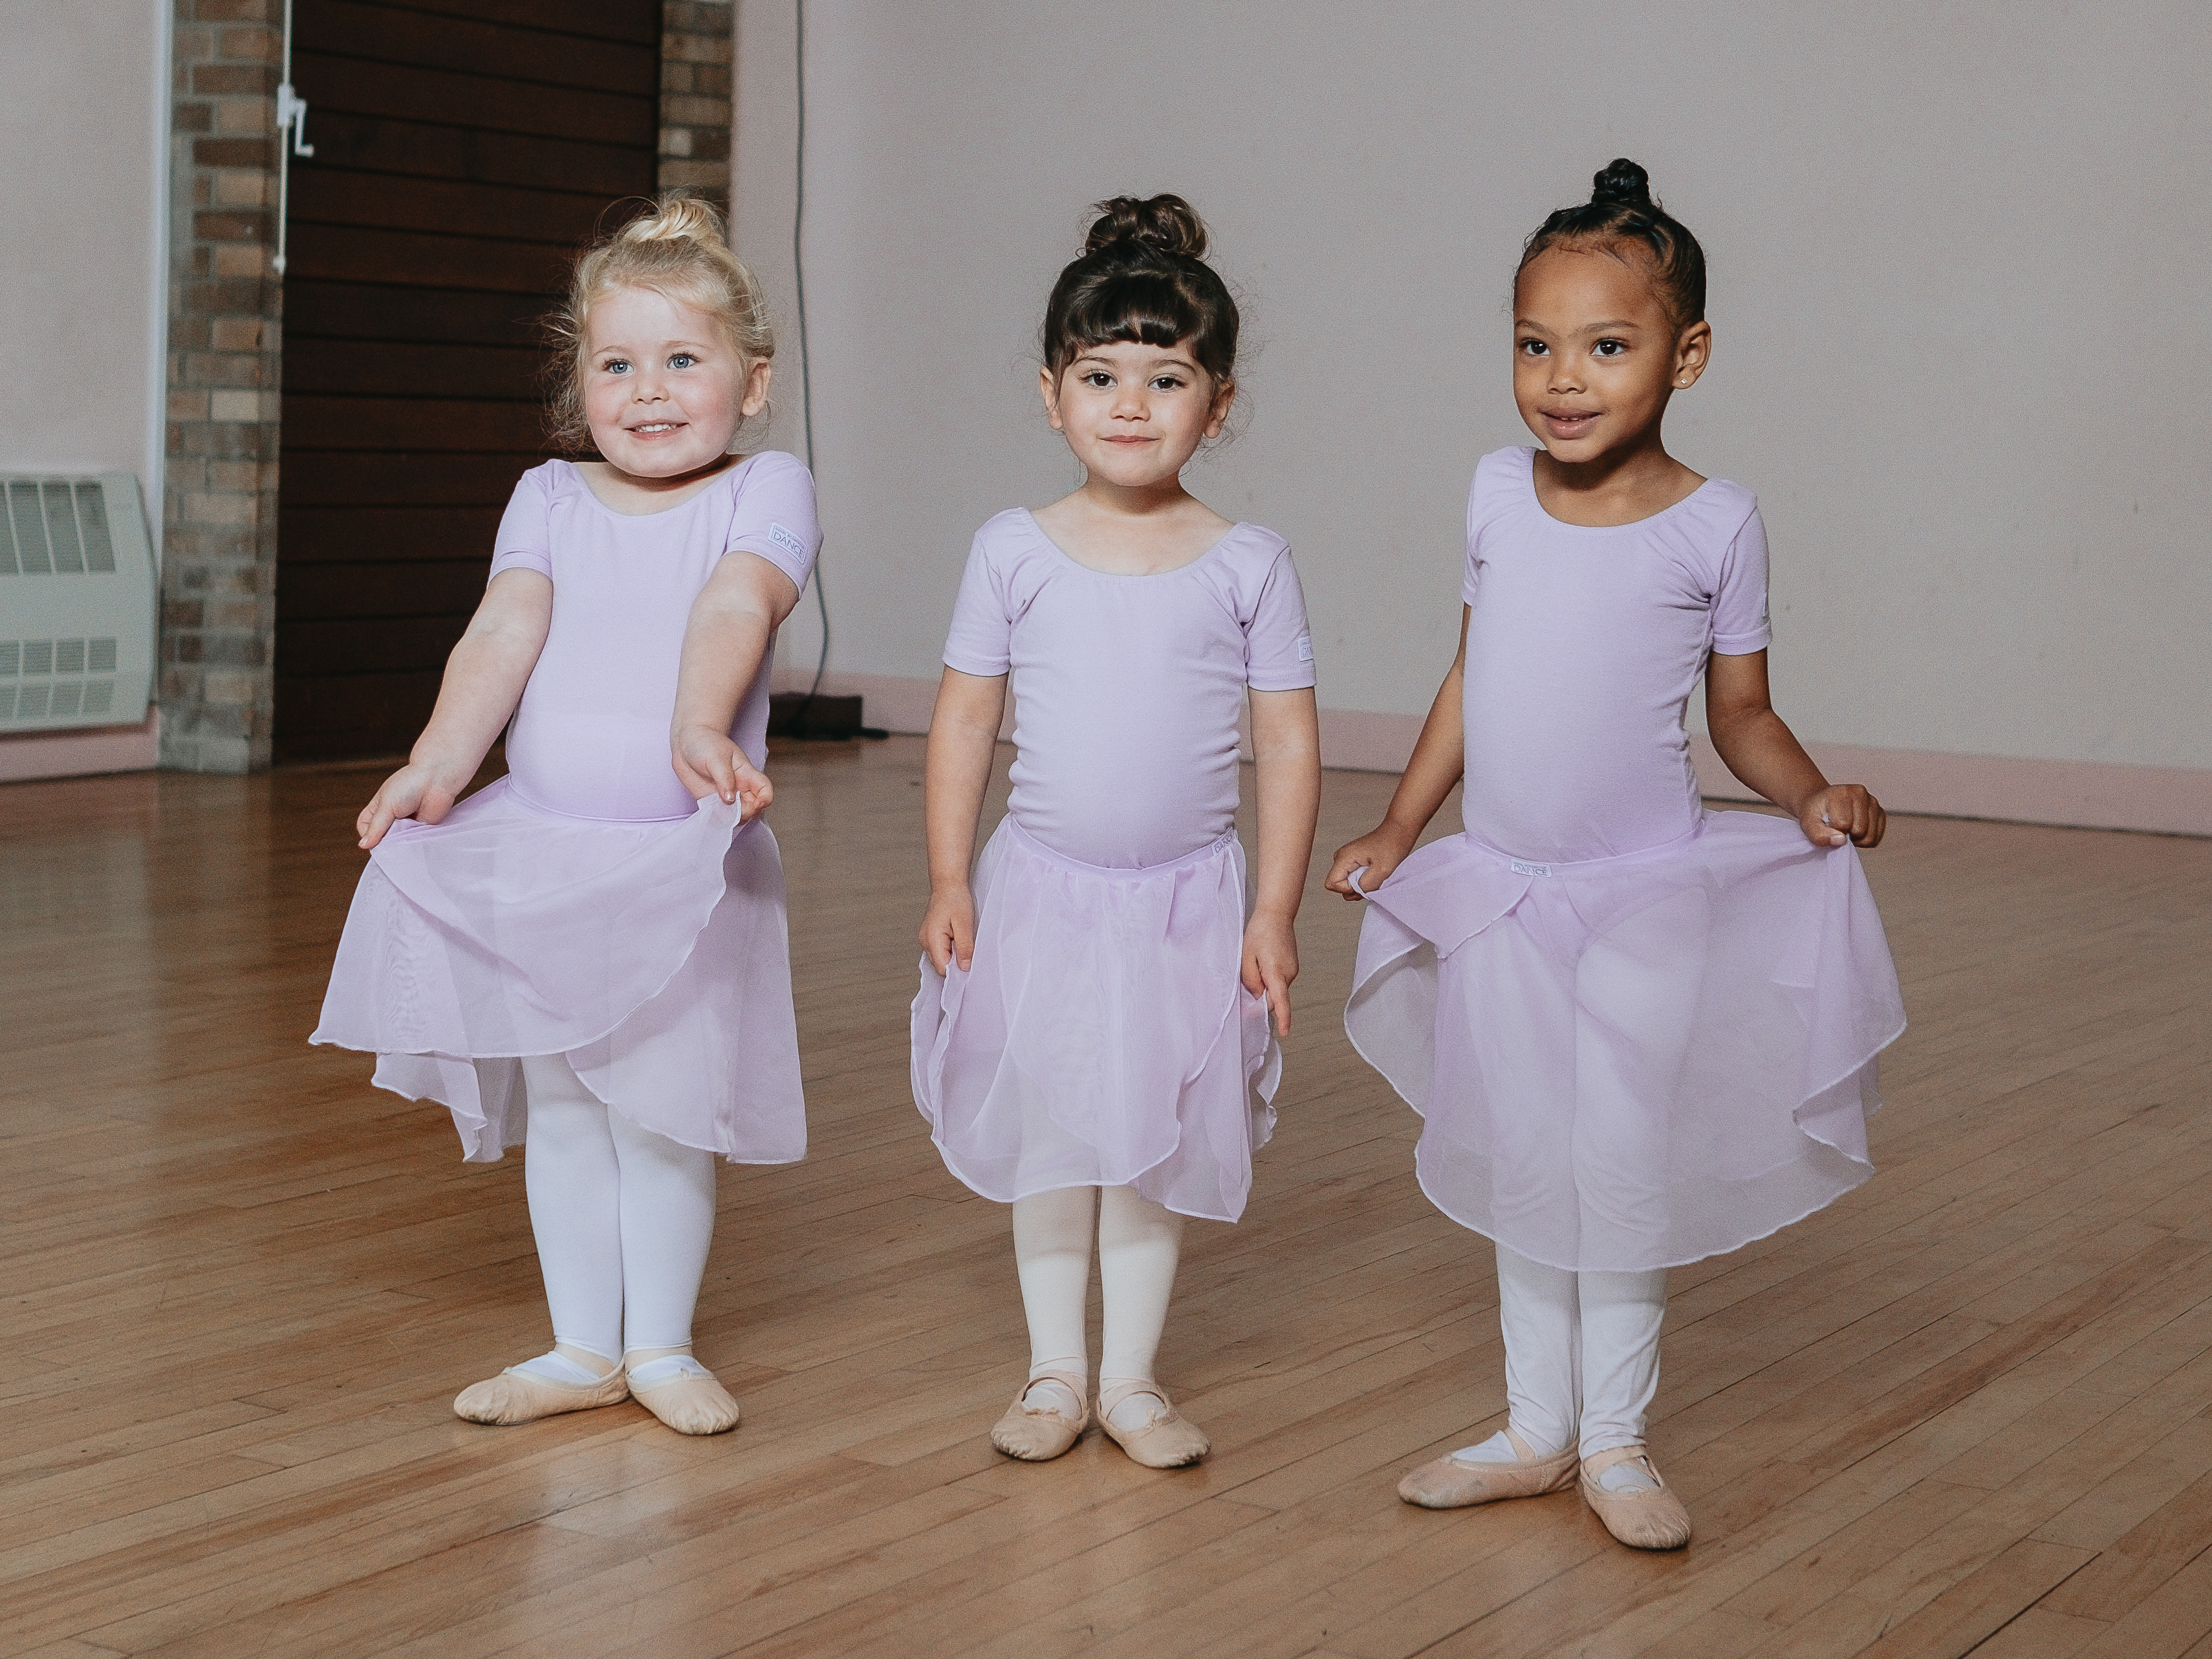 Baby Steps Ballet From Age 18 Months - Mum's, Dad's and Carers